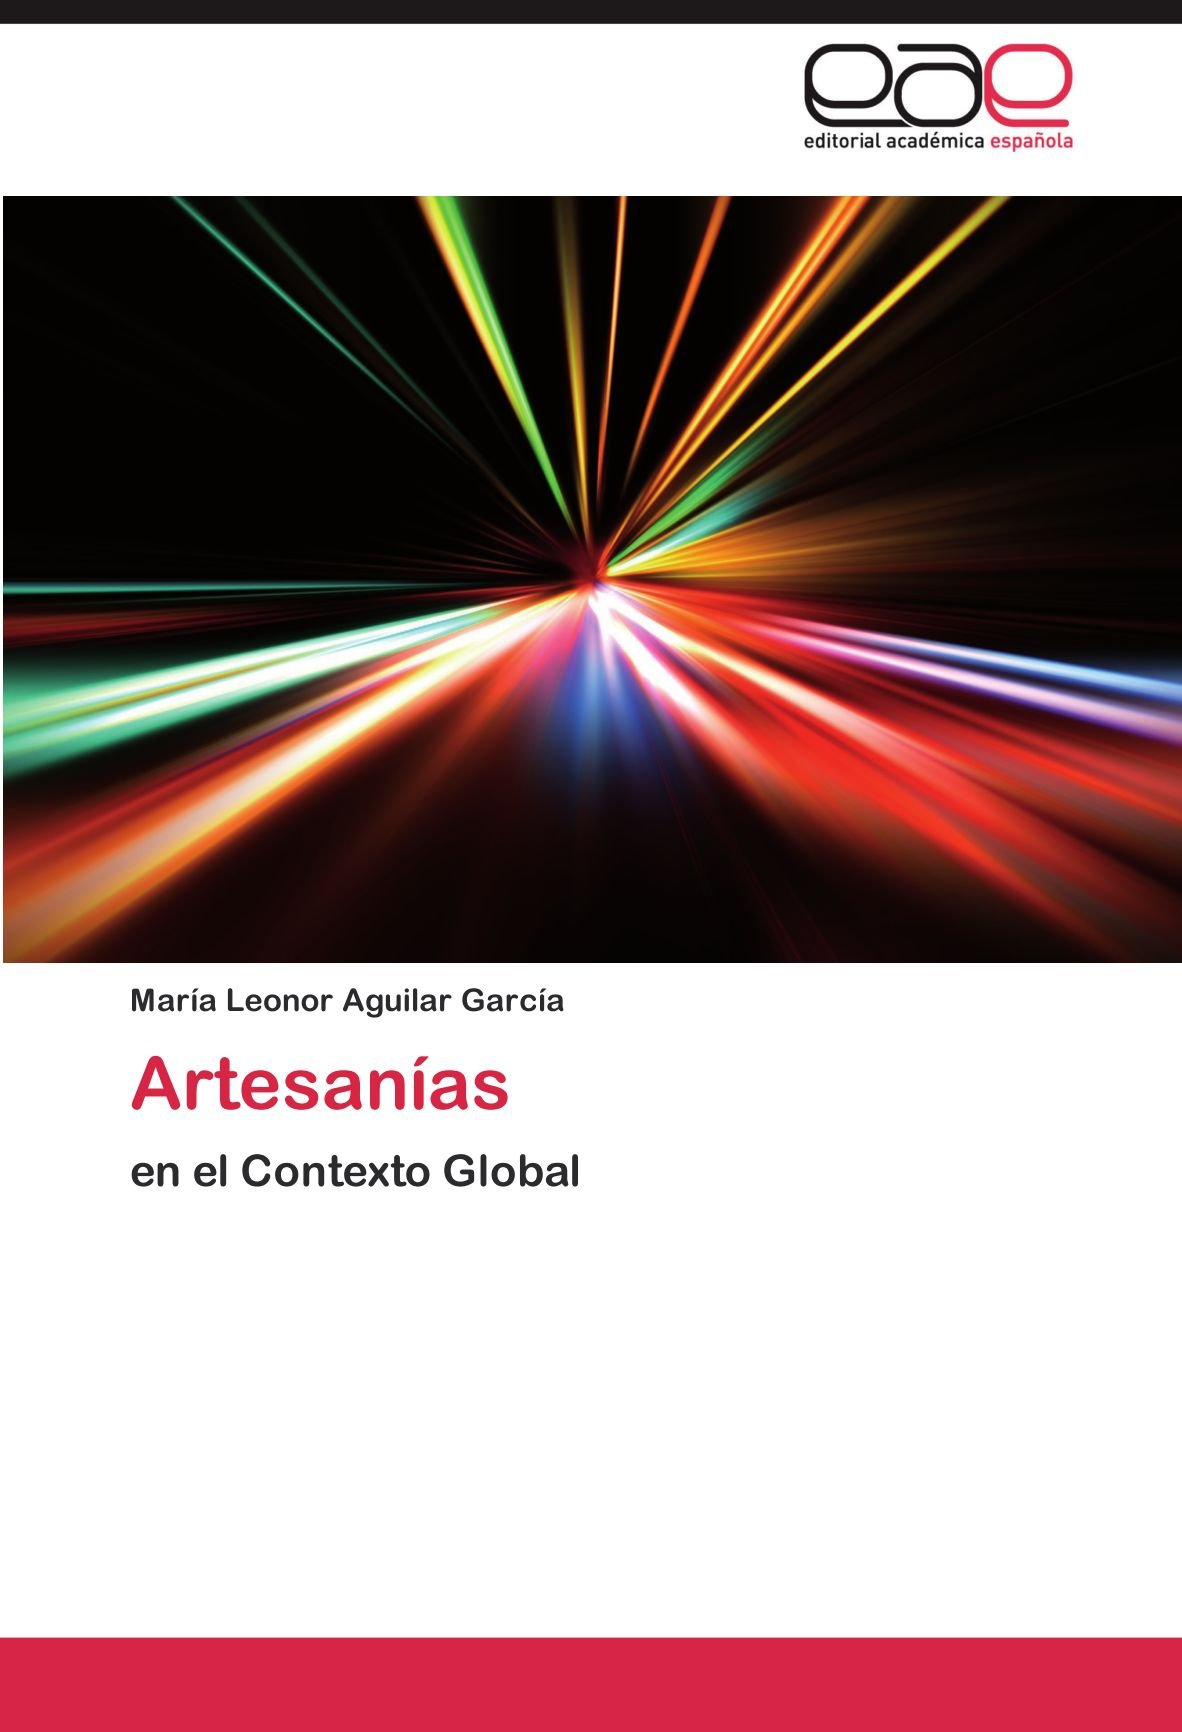 Artesanías: en el Contexto Global (Spanish Edition) (Spanish) Paperback – March 27, 2012